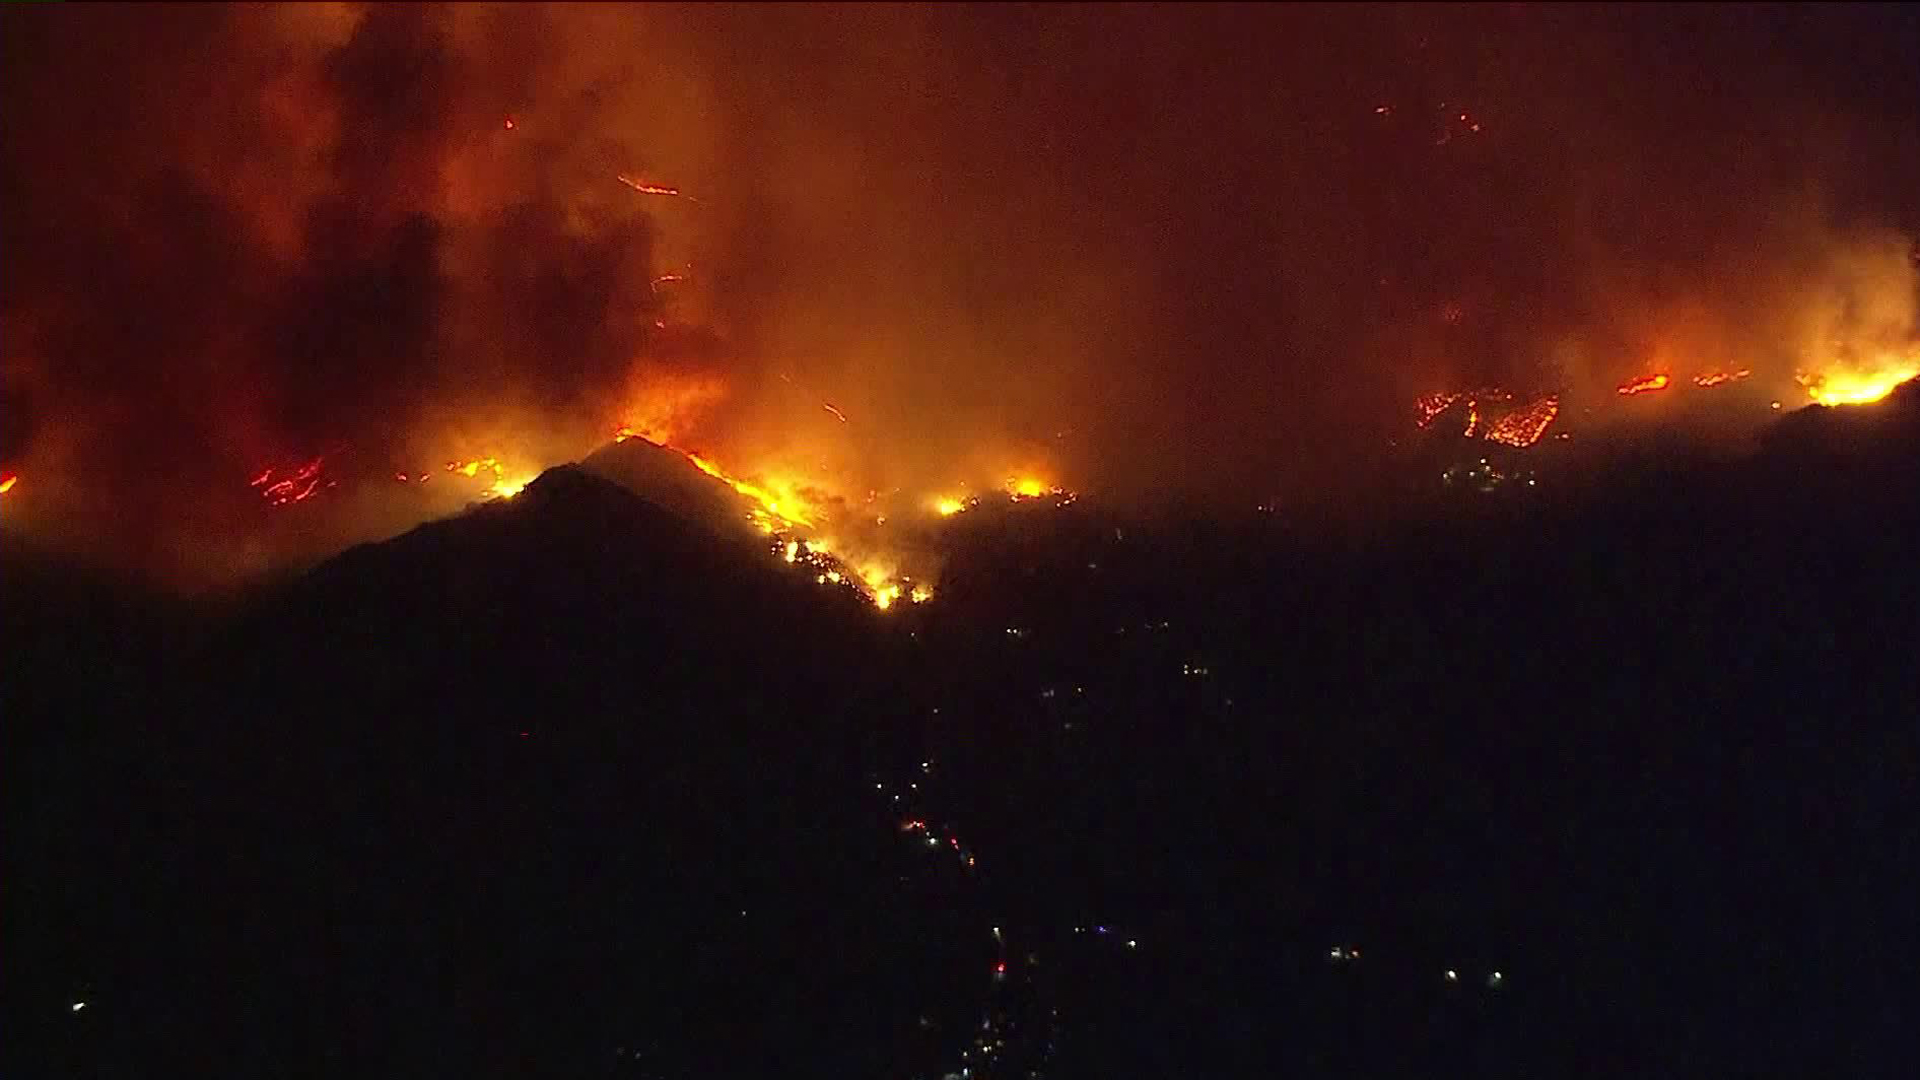 A fast-moving brush fire was burning in the Santa Paula area on Dec. 4, 2017. (Credit: KTLA)